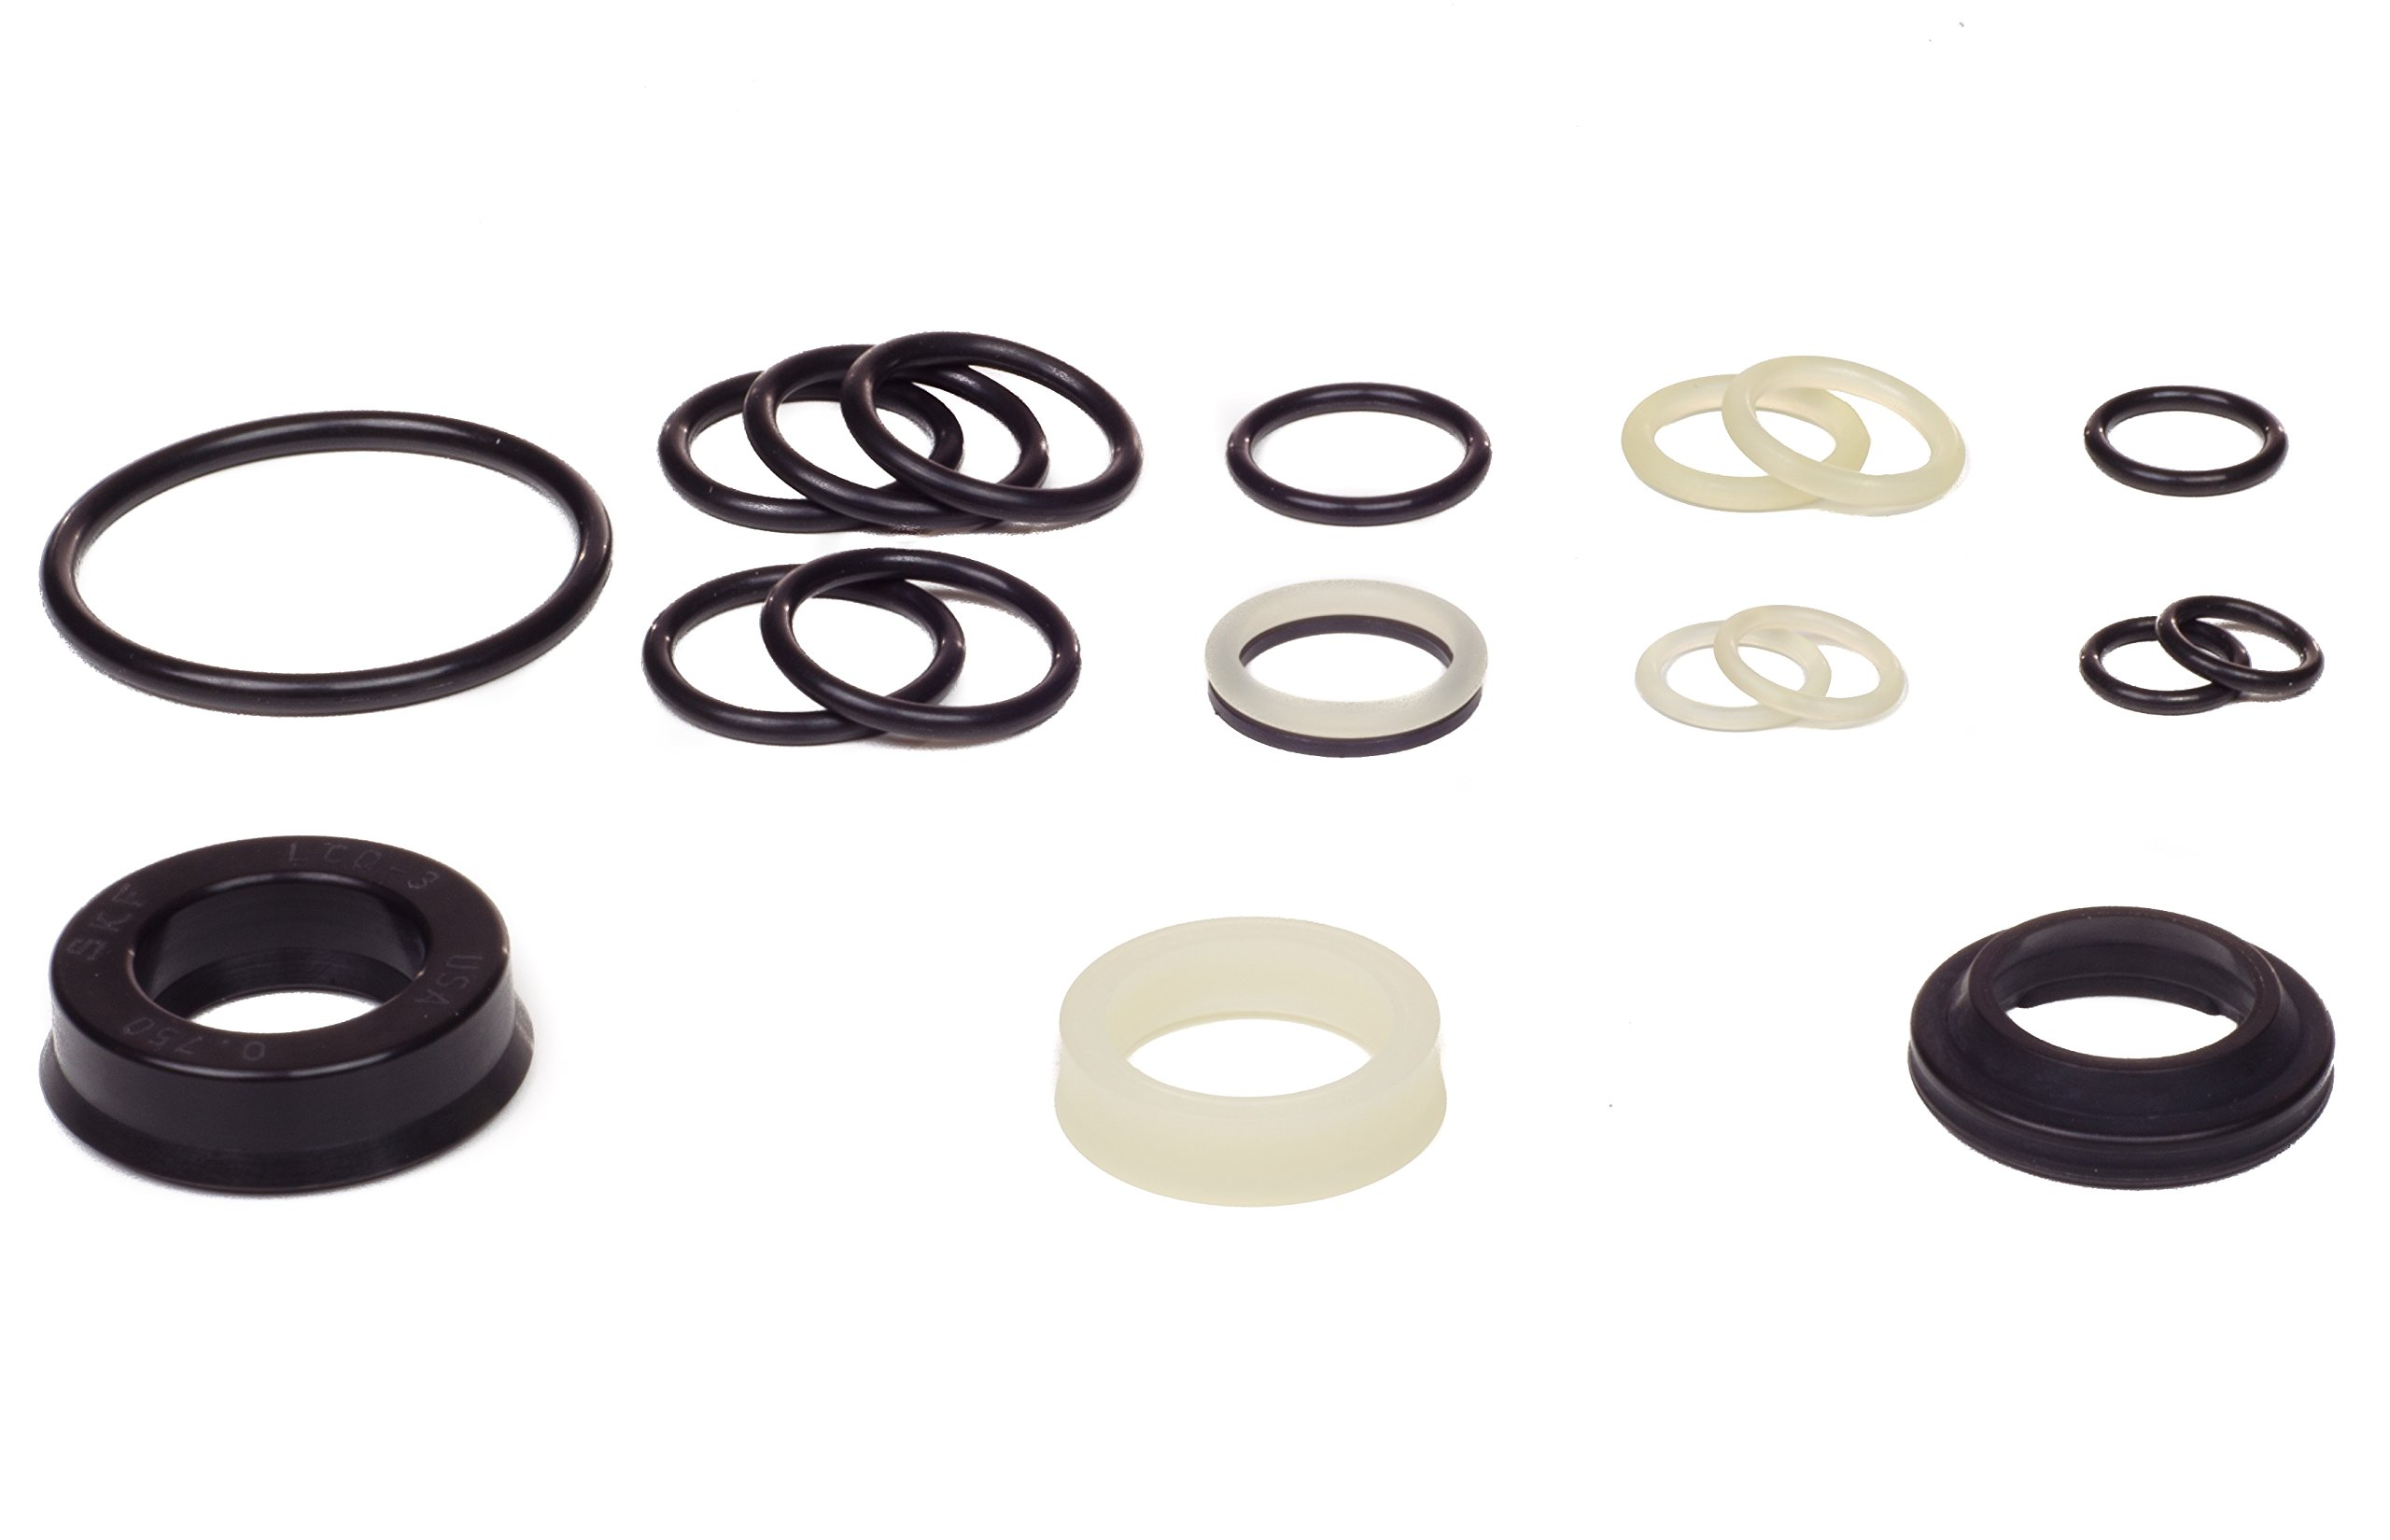 Reliable Equipment R27100 Aftermarket Hydraulic Tamper Seal Kit by Kit King USA